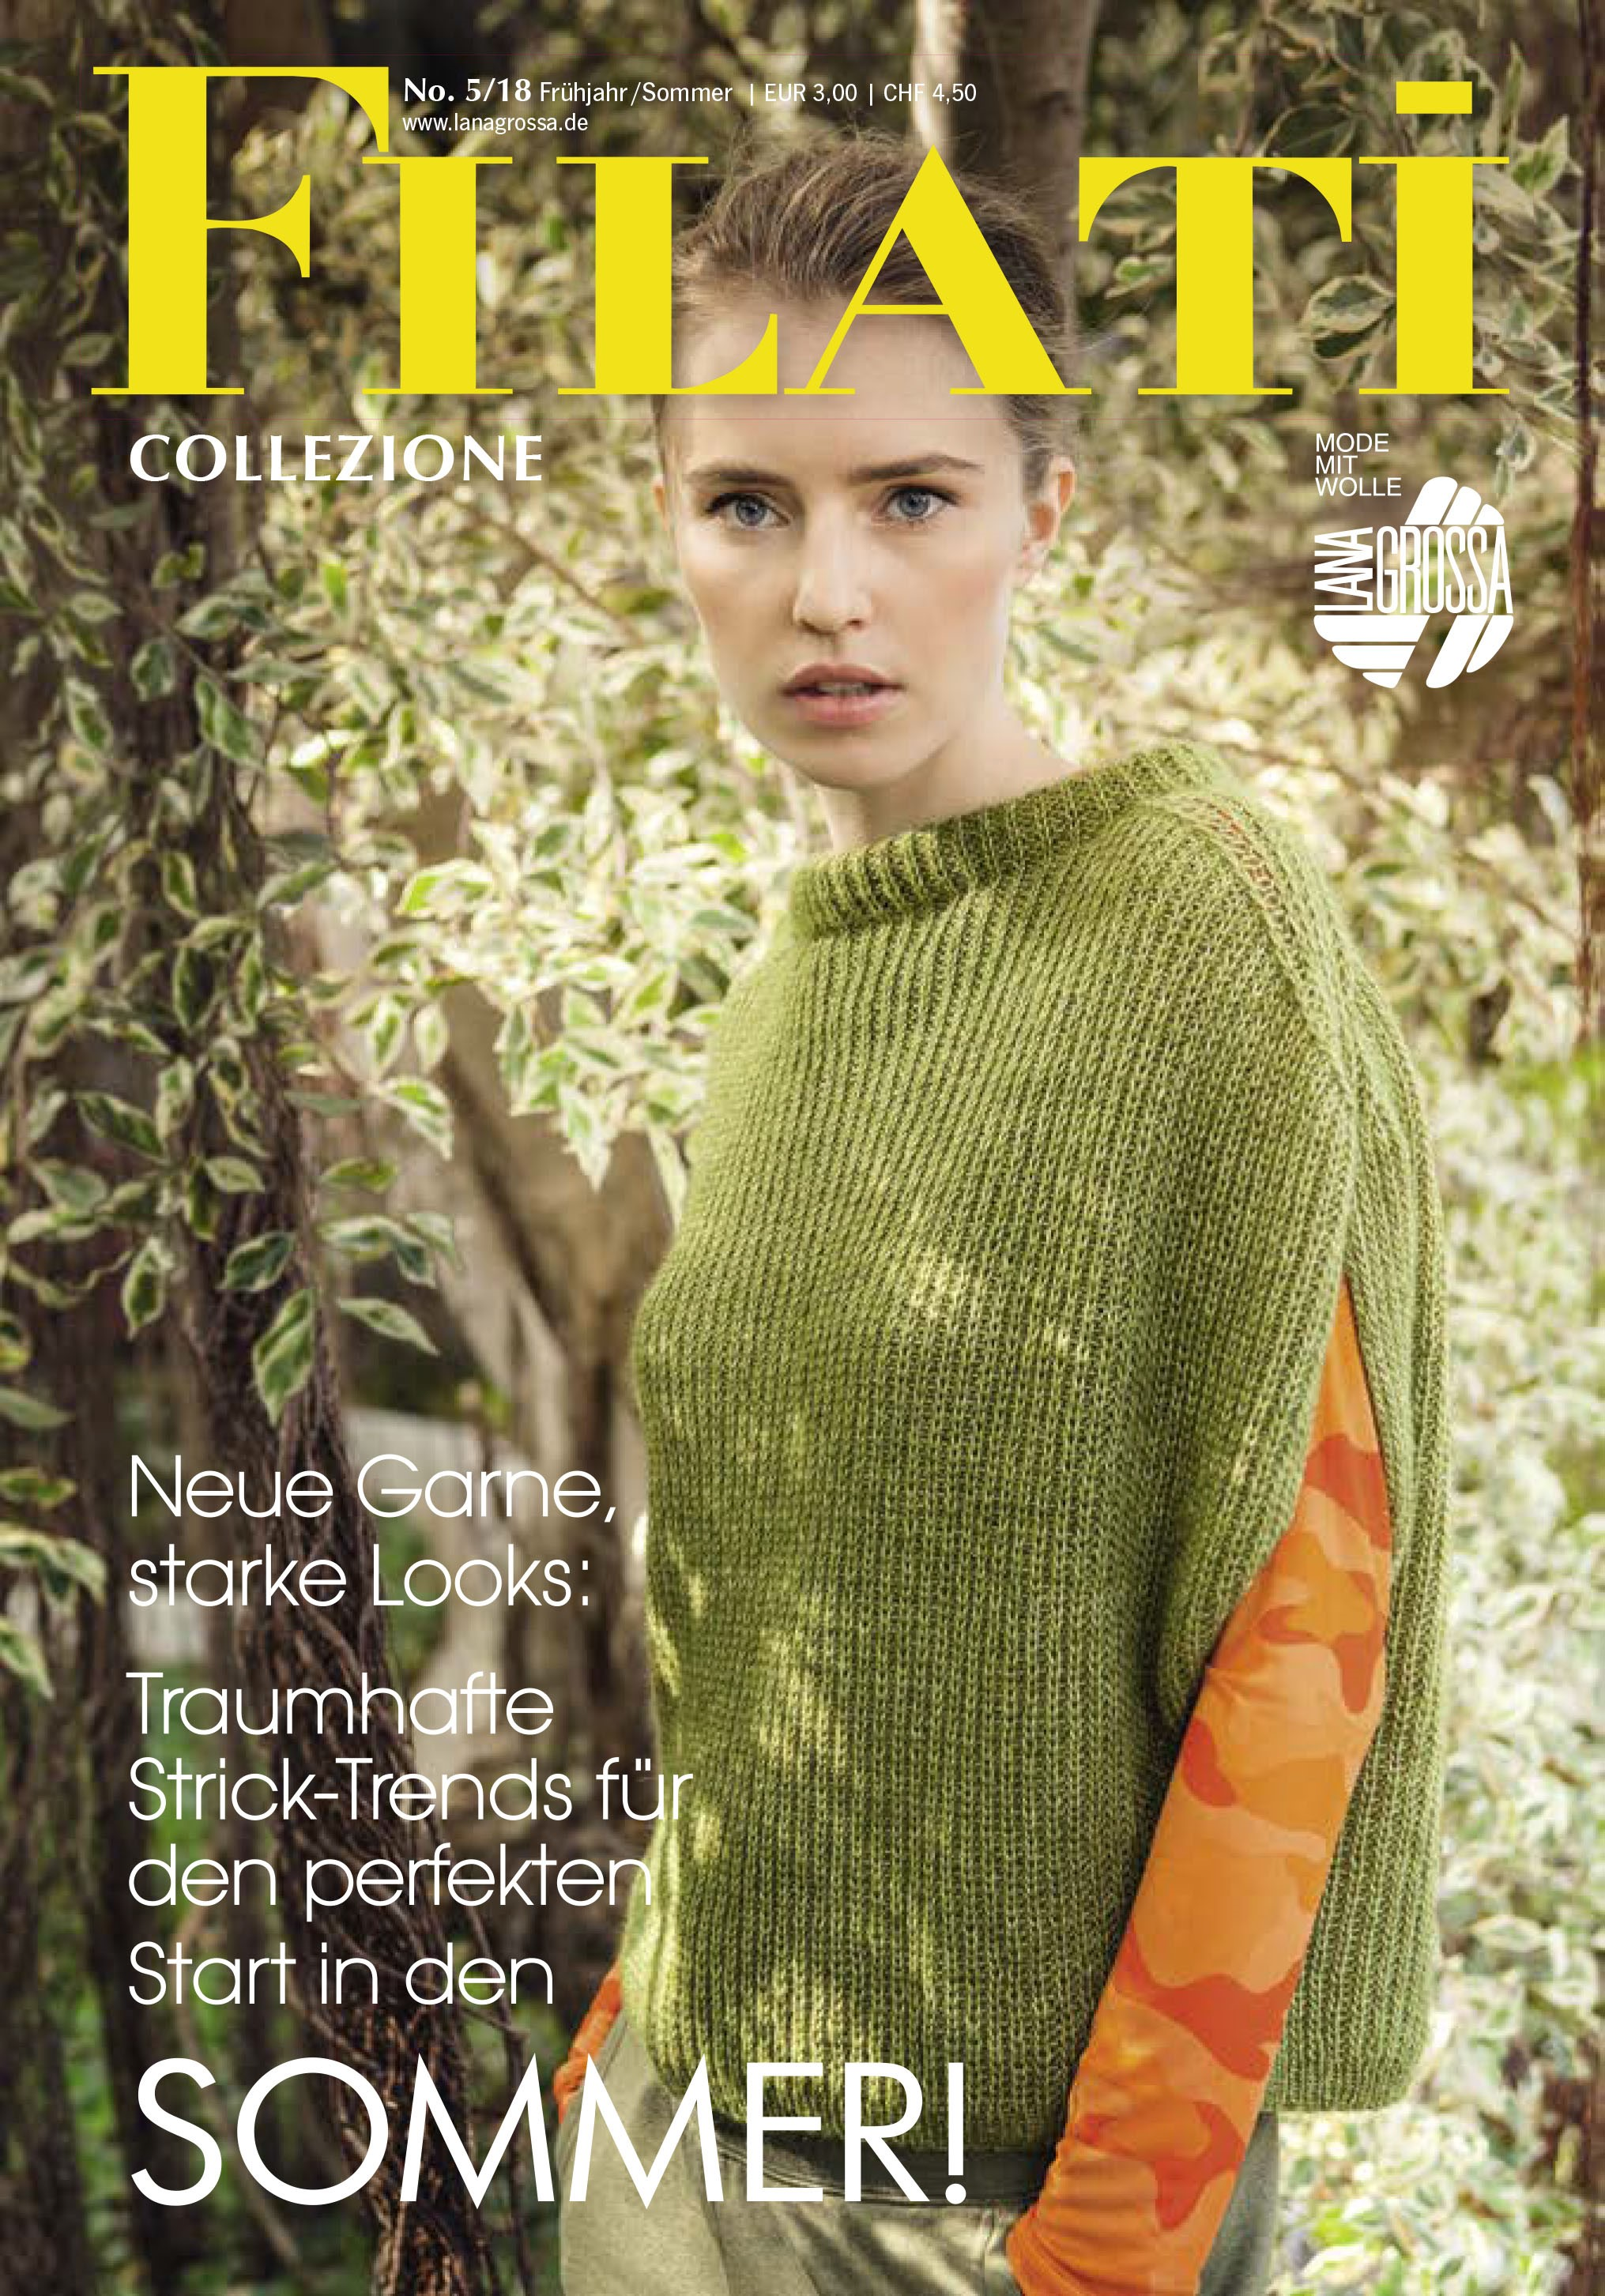 Lana Grossa FILATI COLLEZIONE No. 5 - Magazine (DE) + Knitting instructions (EN)